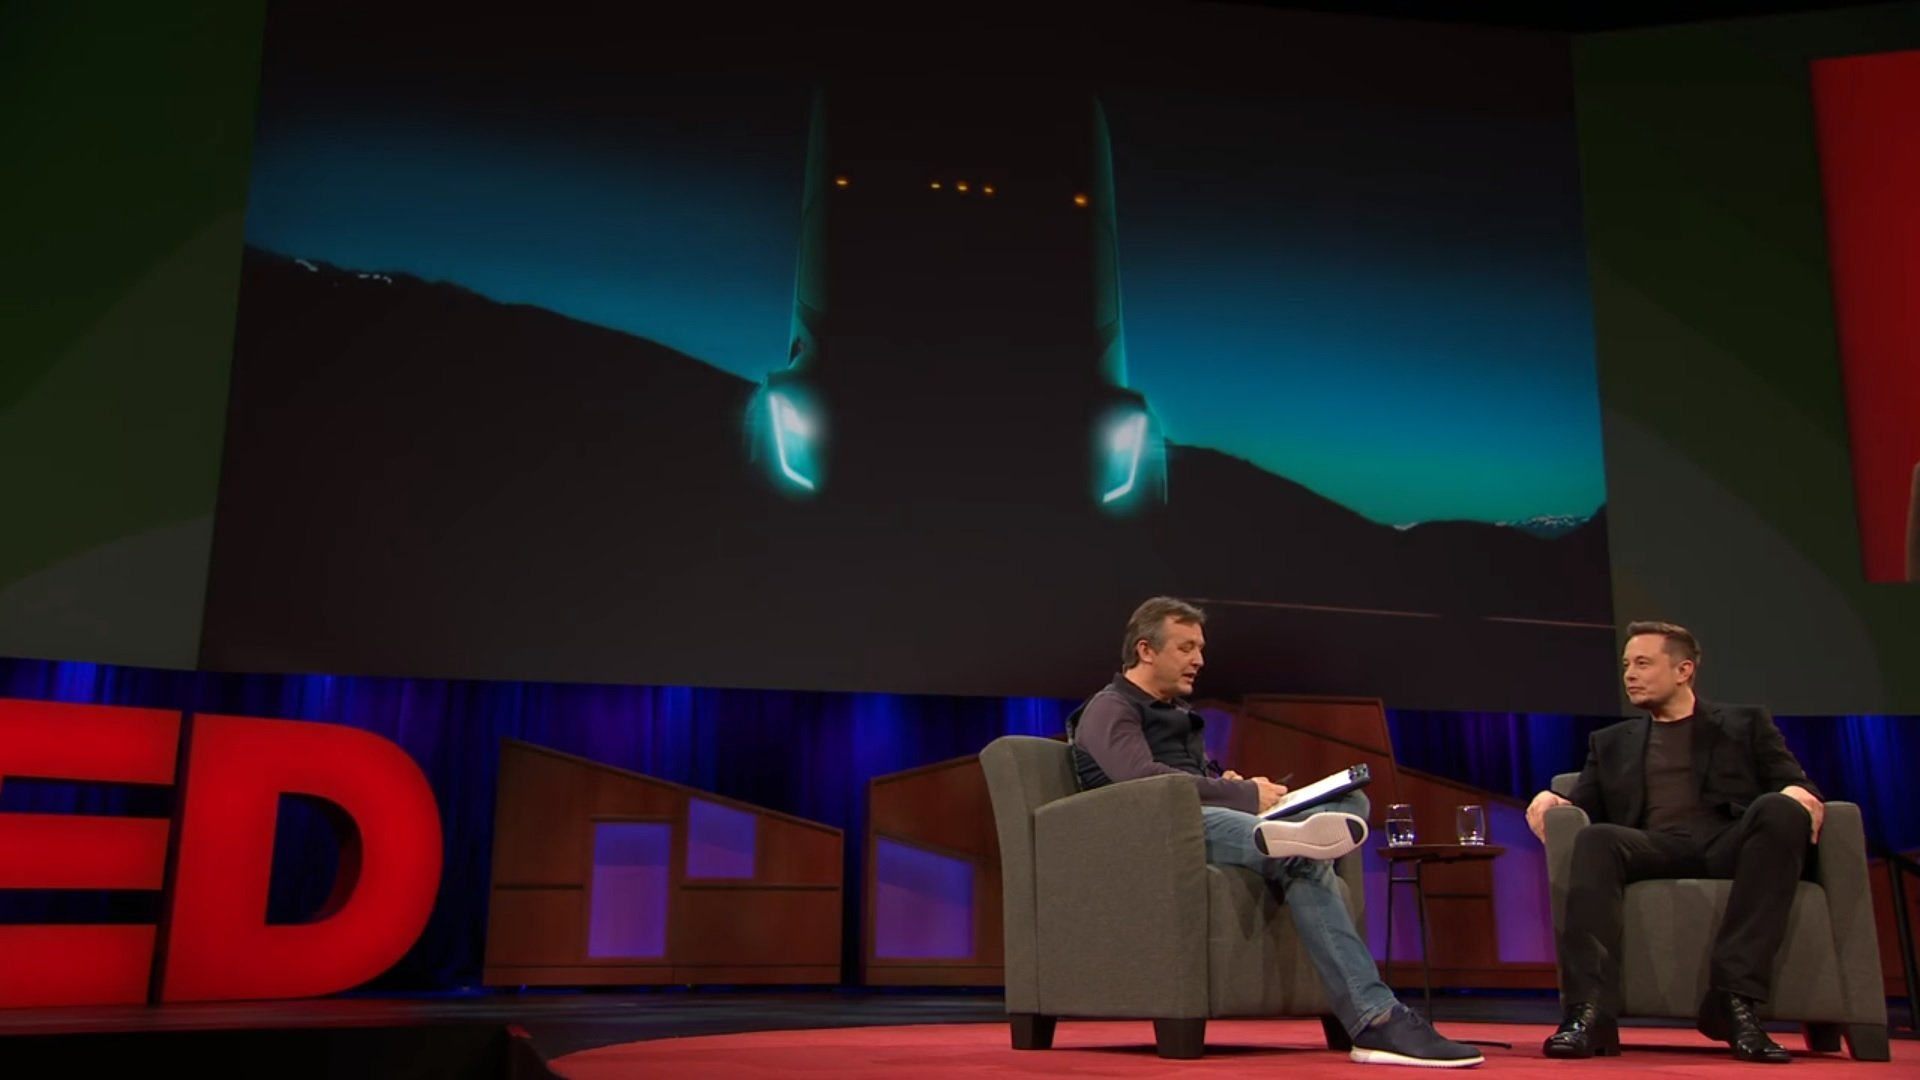 Elon Musk TED Conference